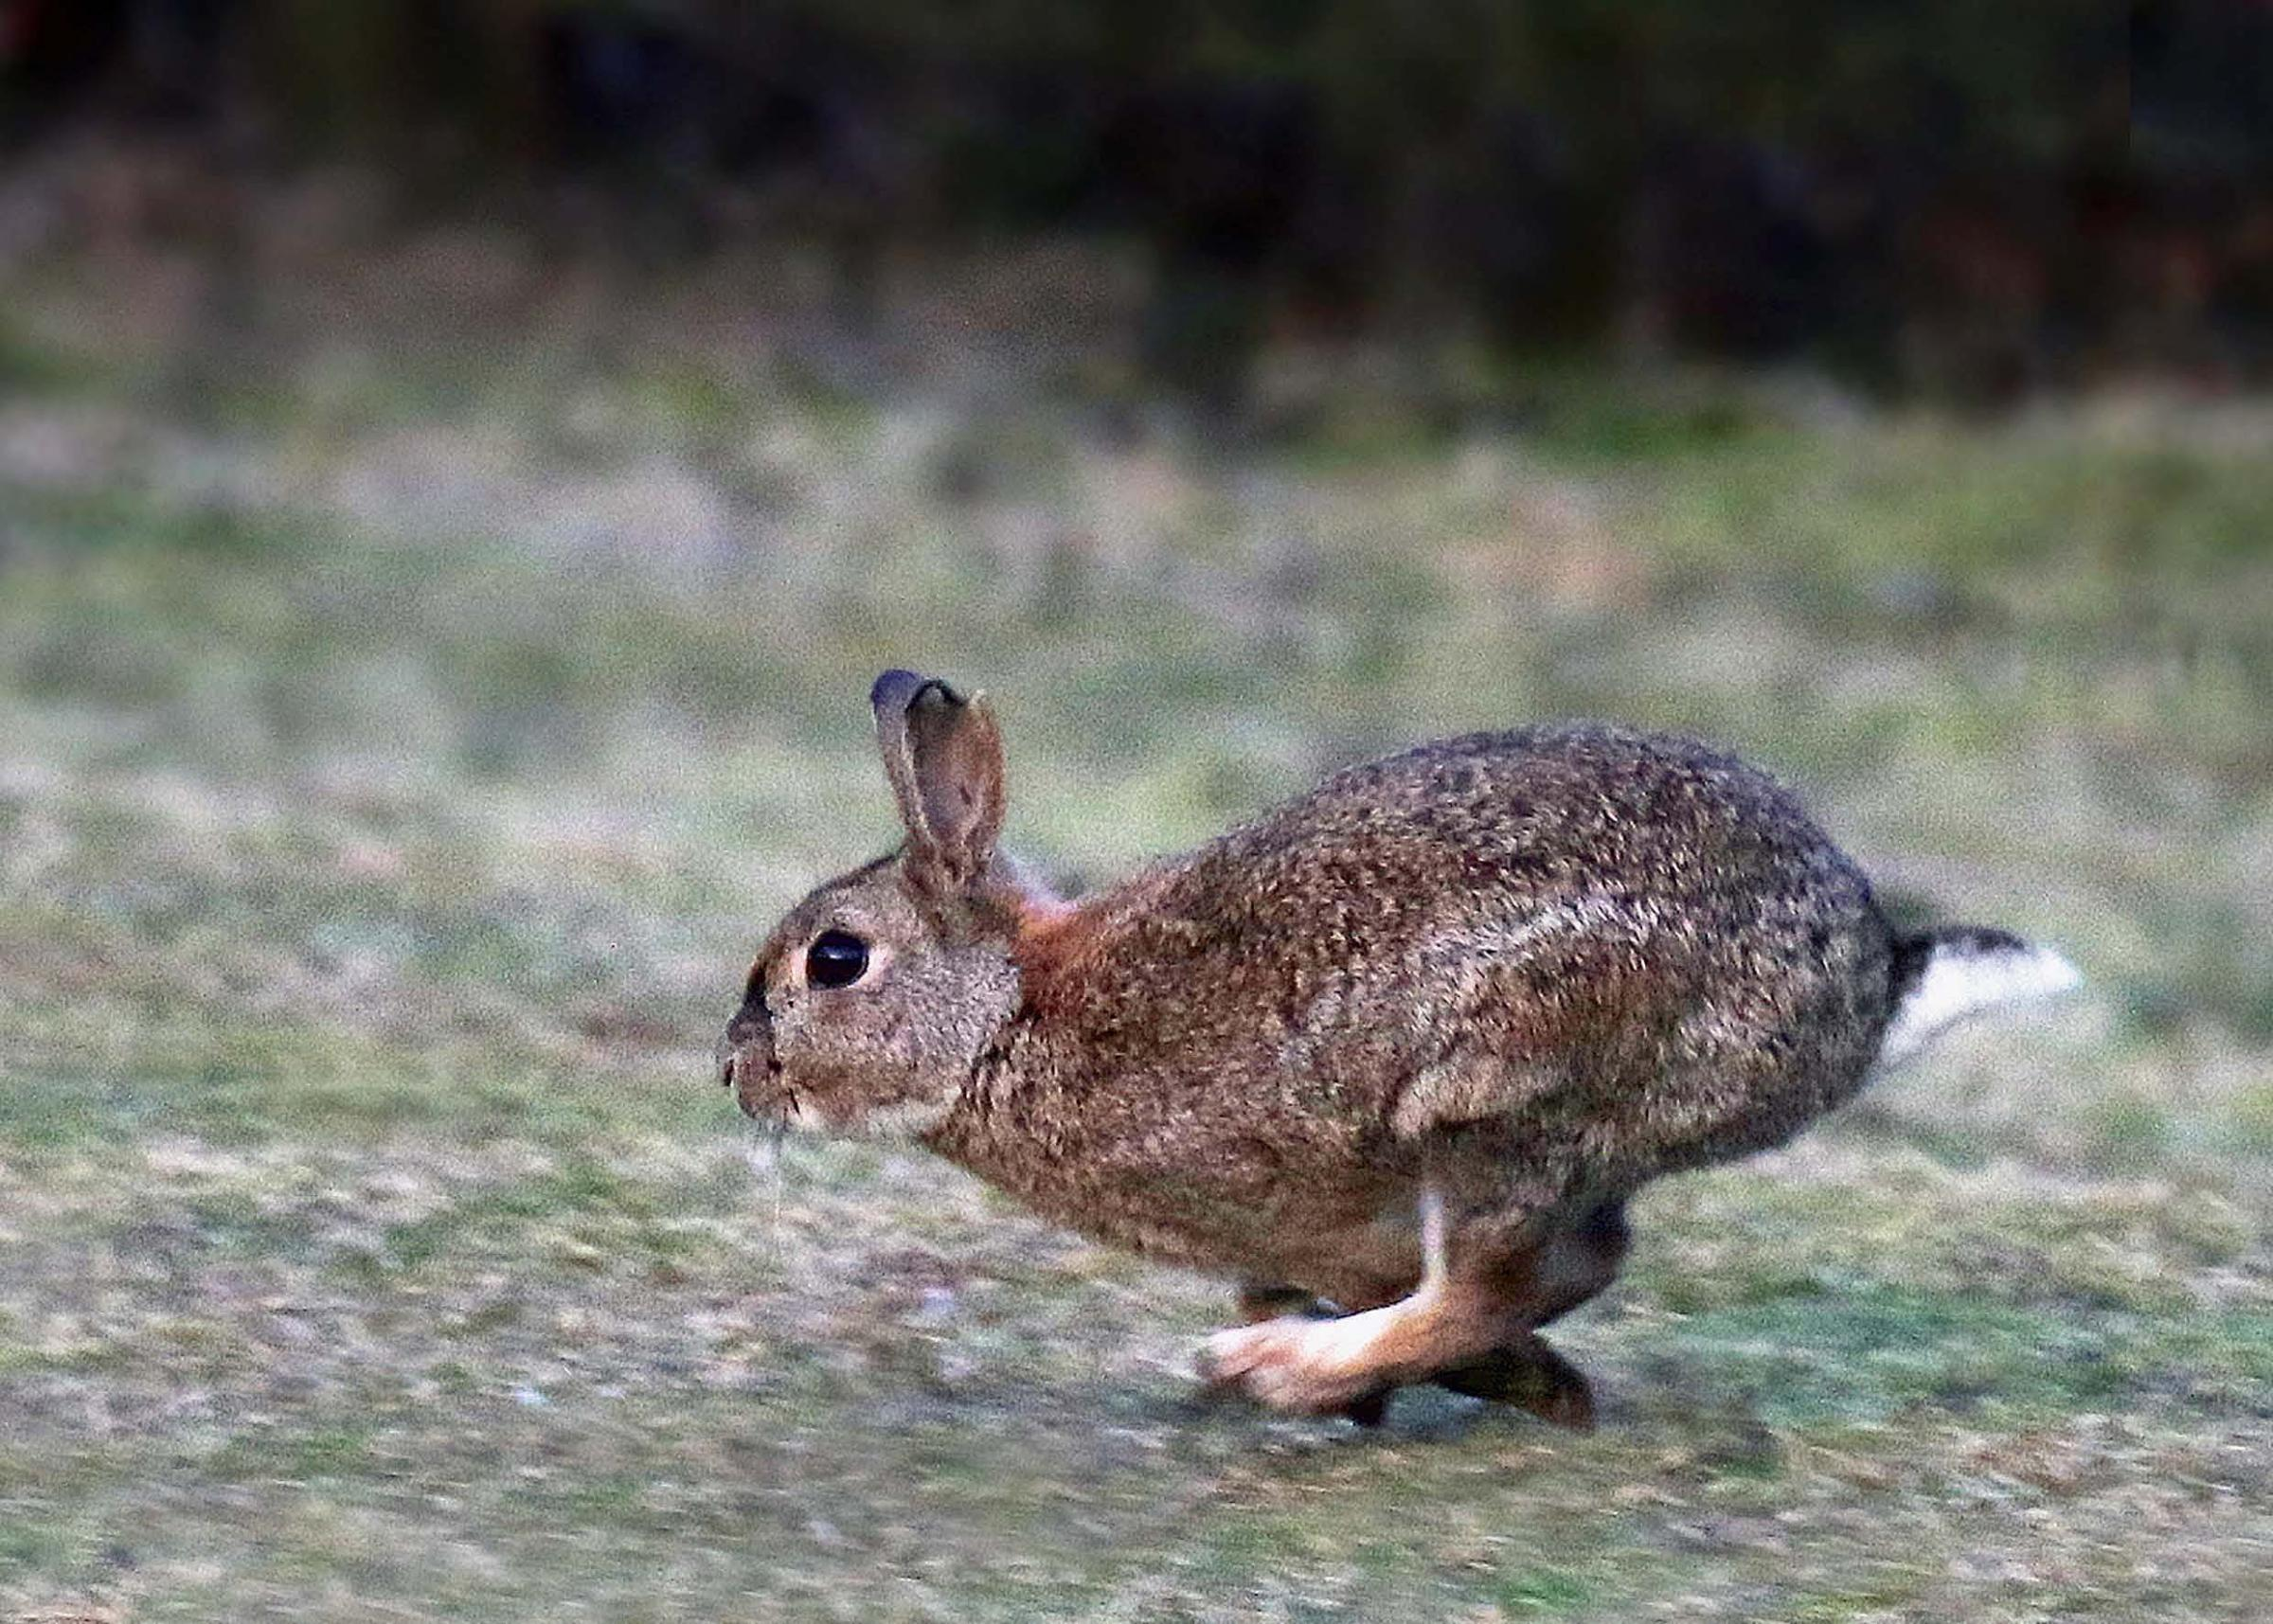 A rabbit in full gallop. One of the many wild animals and birds which often become roadkill